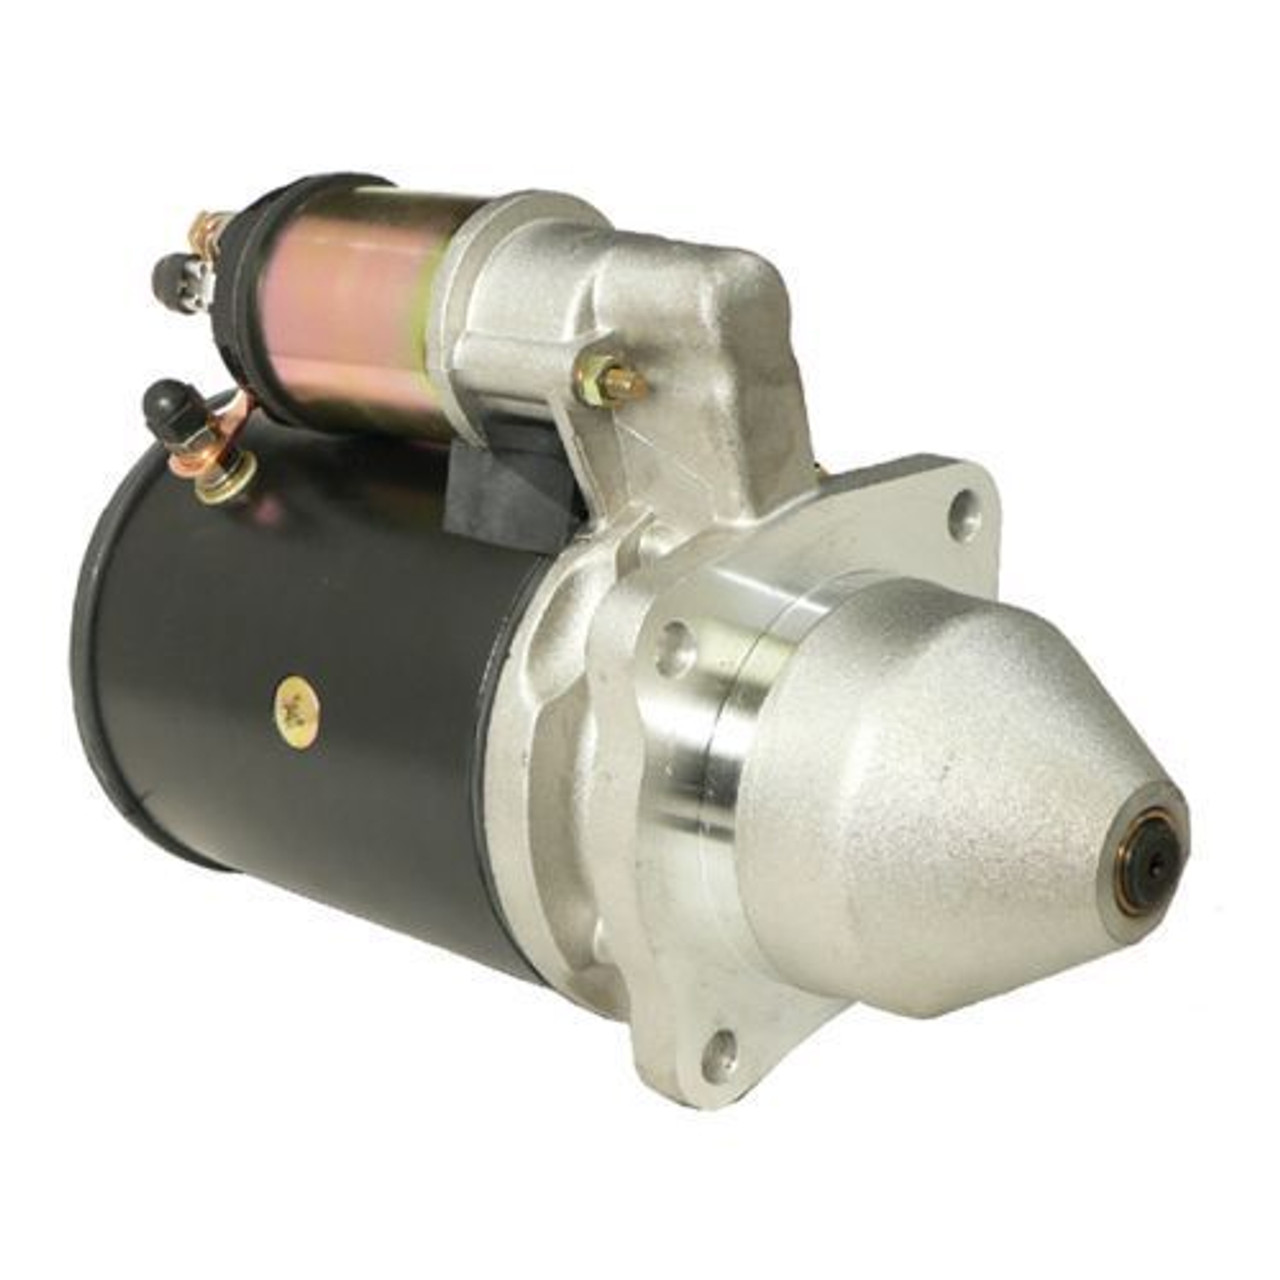 New Starter For Perkins 1004 1006 3 152 4 108 4 236 4 318 6 354 Industrial  Engine